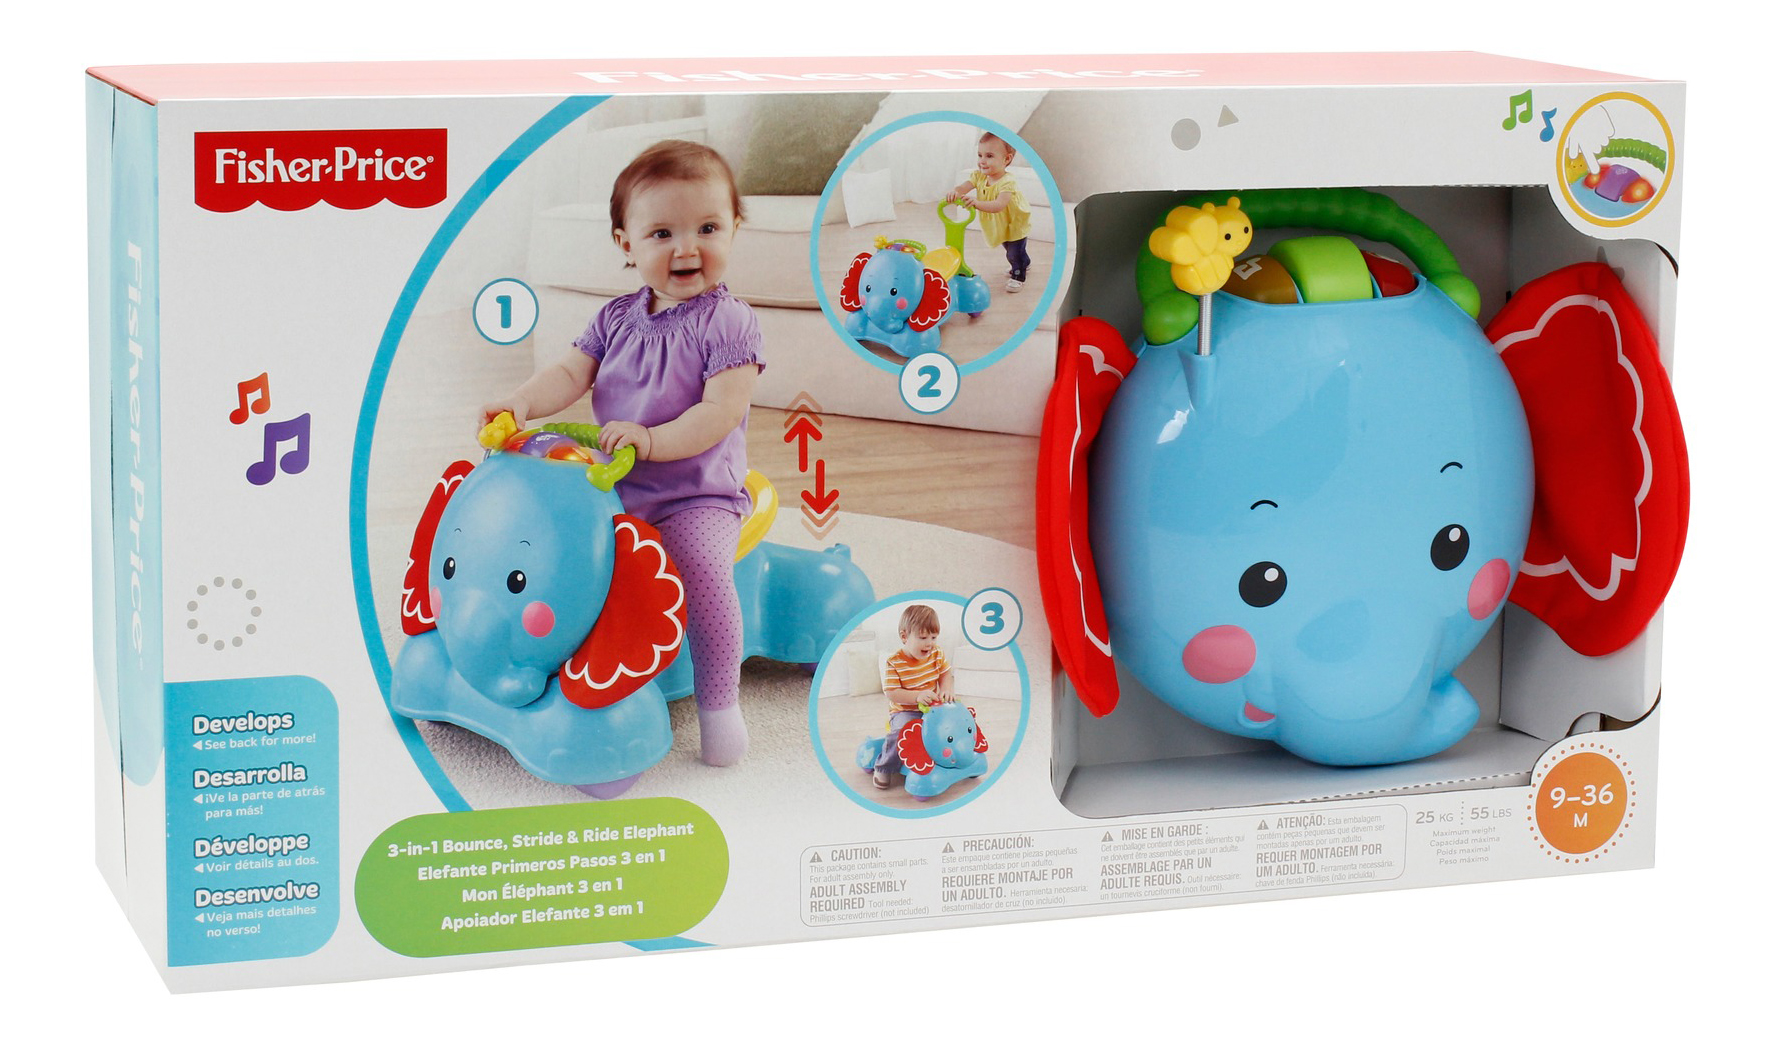 Каталка детская Fisher-Price® 3-in-1 bounce, stride #and# ride elephant CBN62